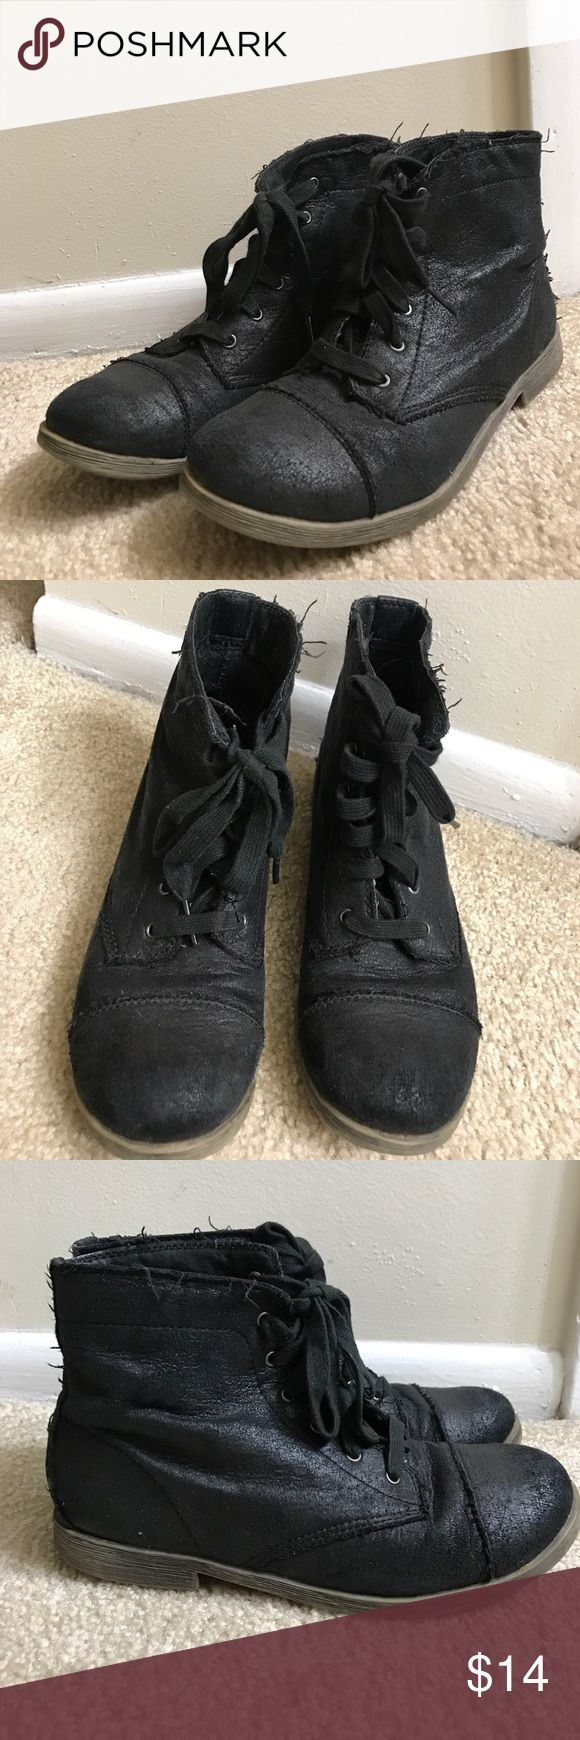 Black ankle combat boots Black ankle combat boots. Well-loved. This pair has been resoled! Purchased at Nordstrom Rack. Nordstrom Shoes Ankle Boots & Booties